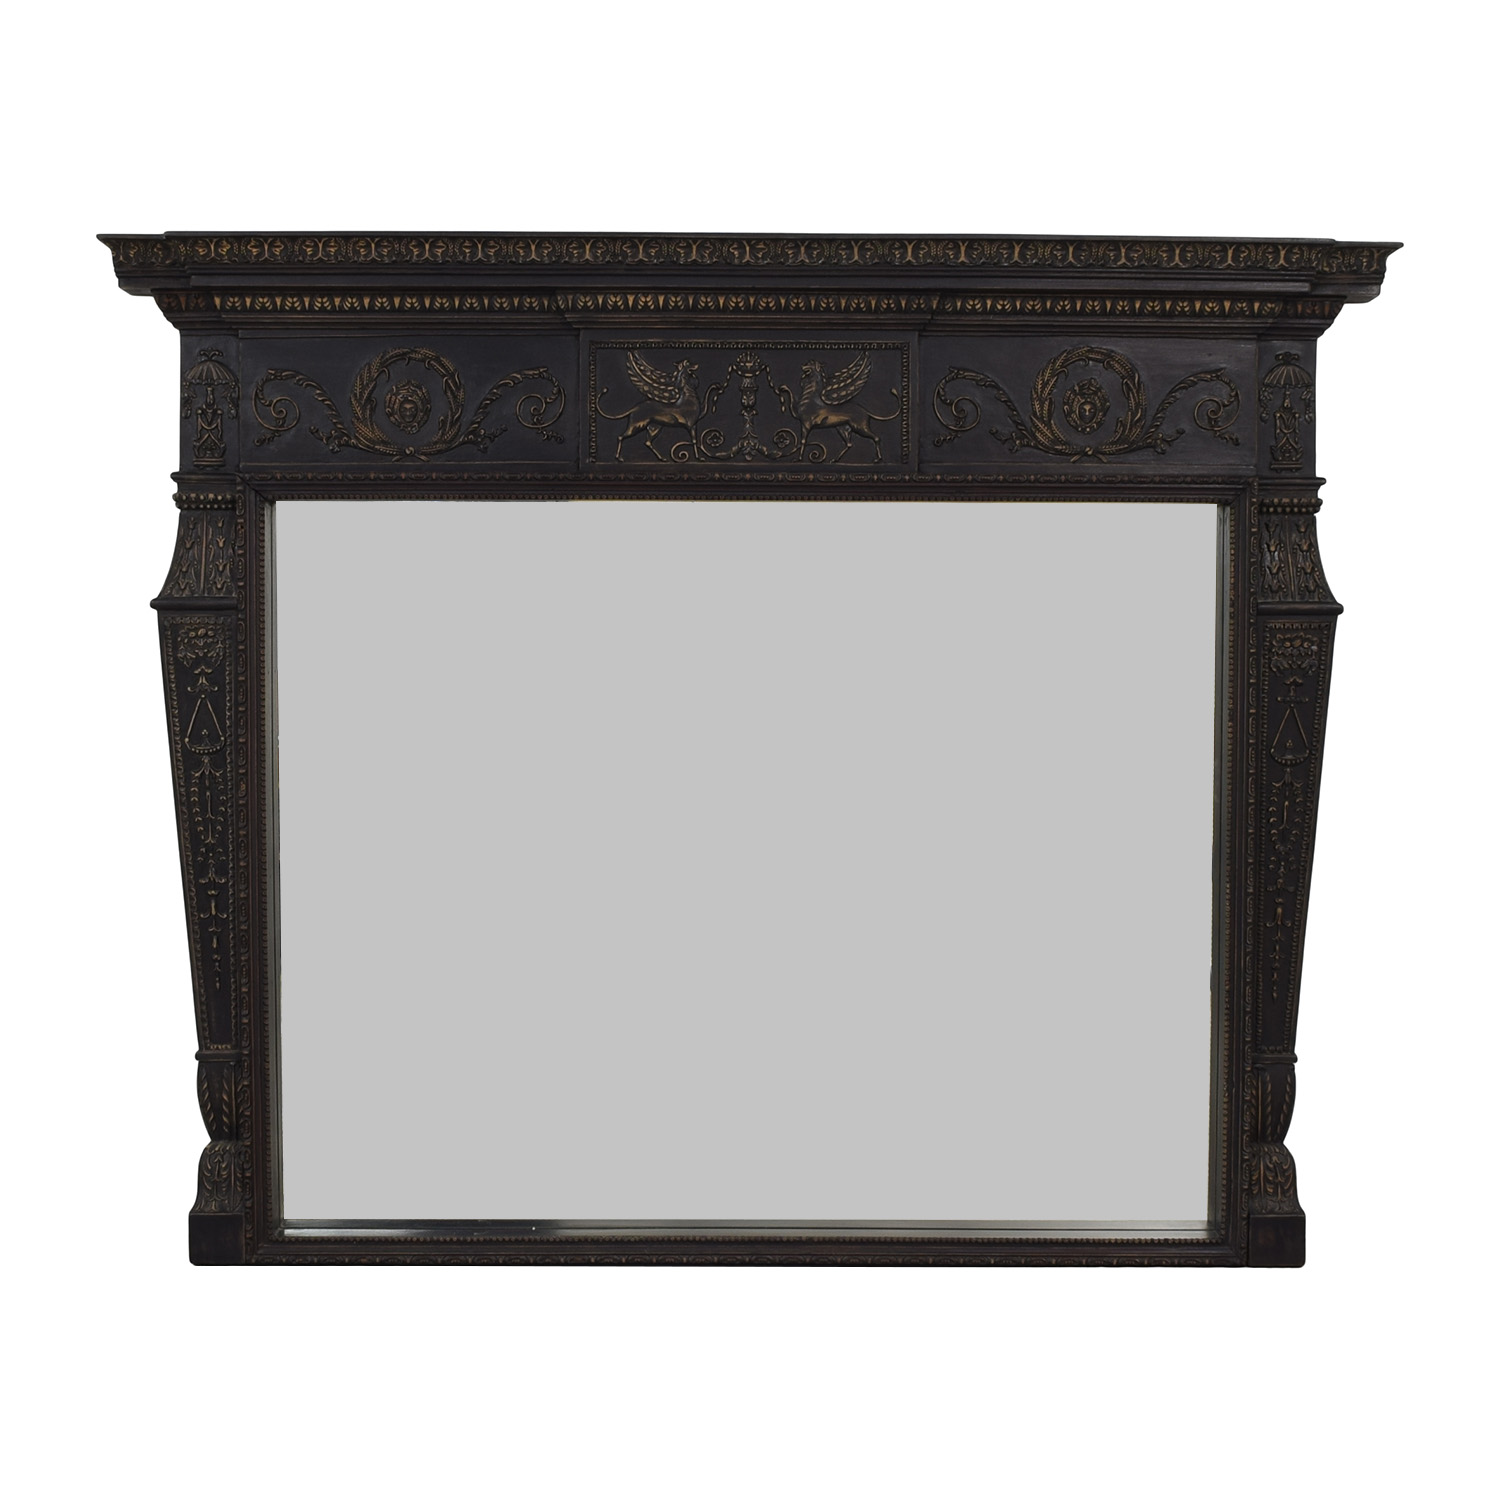 Carved Framed Mirror Decor